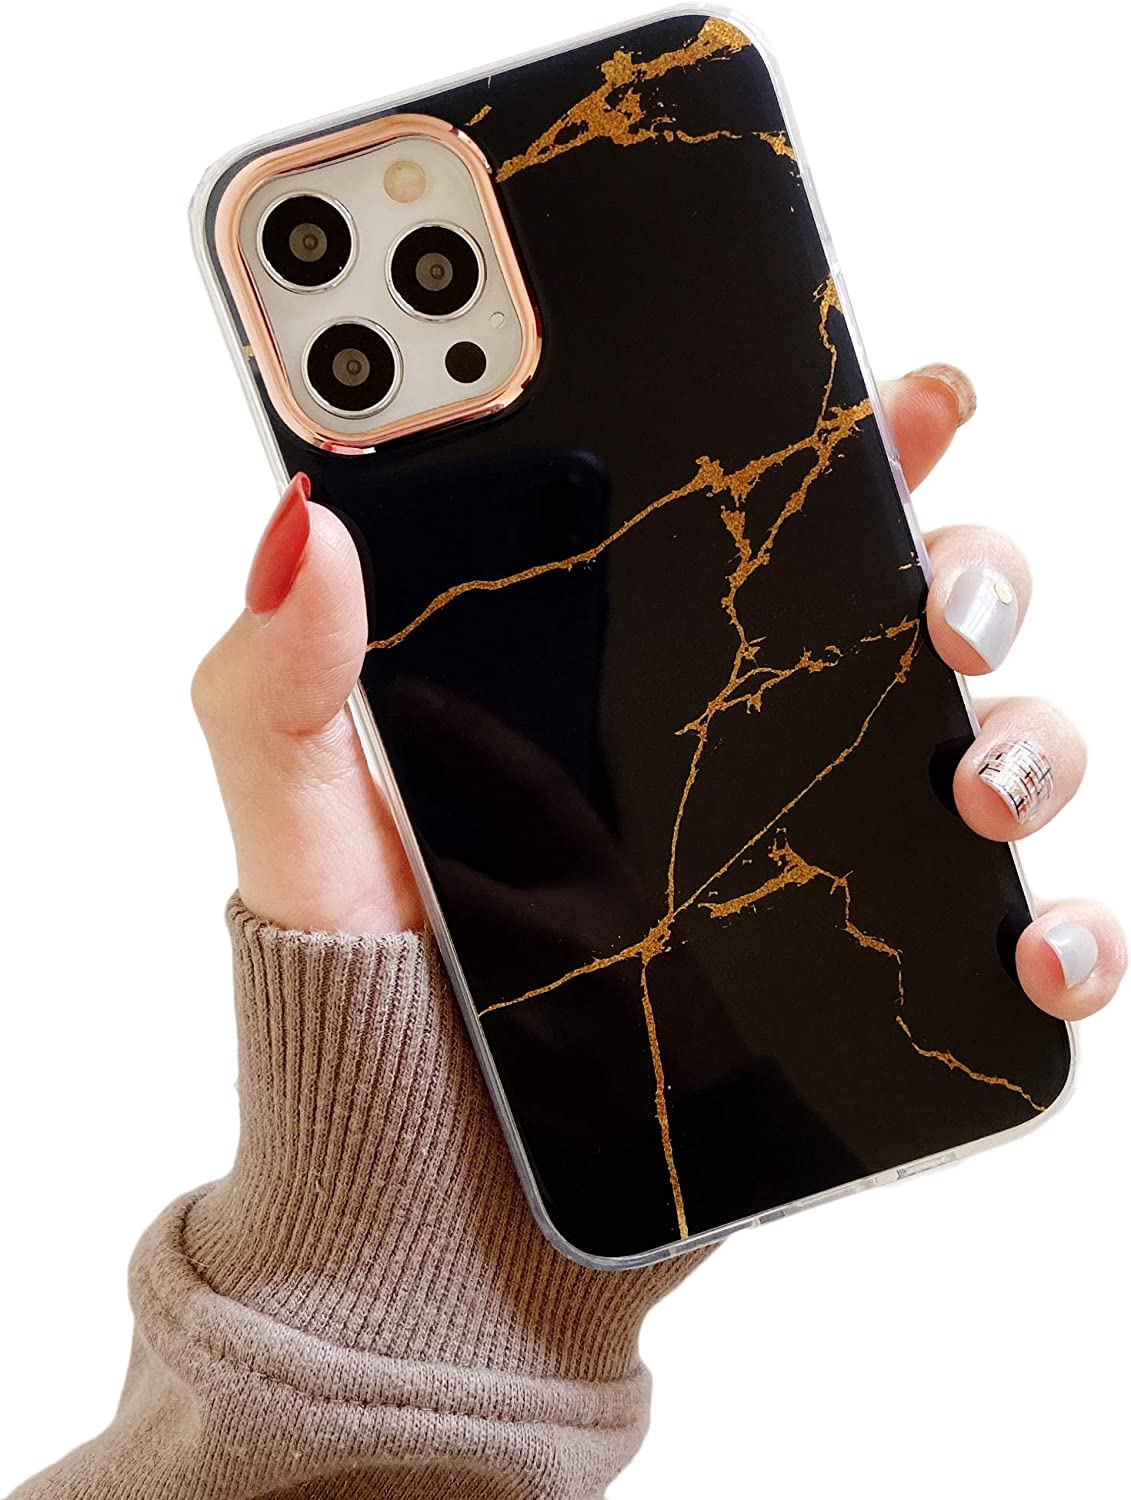 Cocomii Shiny Marble iPhone 12 Pro Max Case, Slim Glossy Soft TPU Silicone Rubber Shiny Reflective Streaks Hard Back Shockproof Bumper Cover Compatible with Apple iPhone 12 Pro Max 6.7